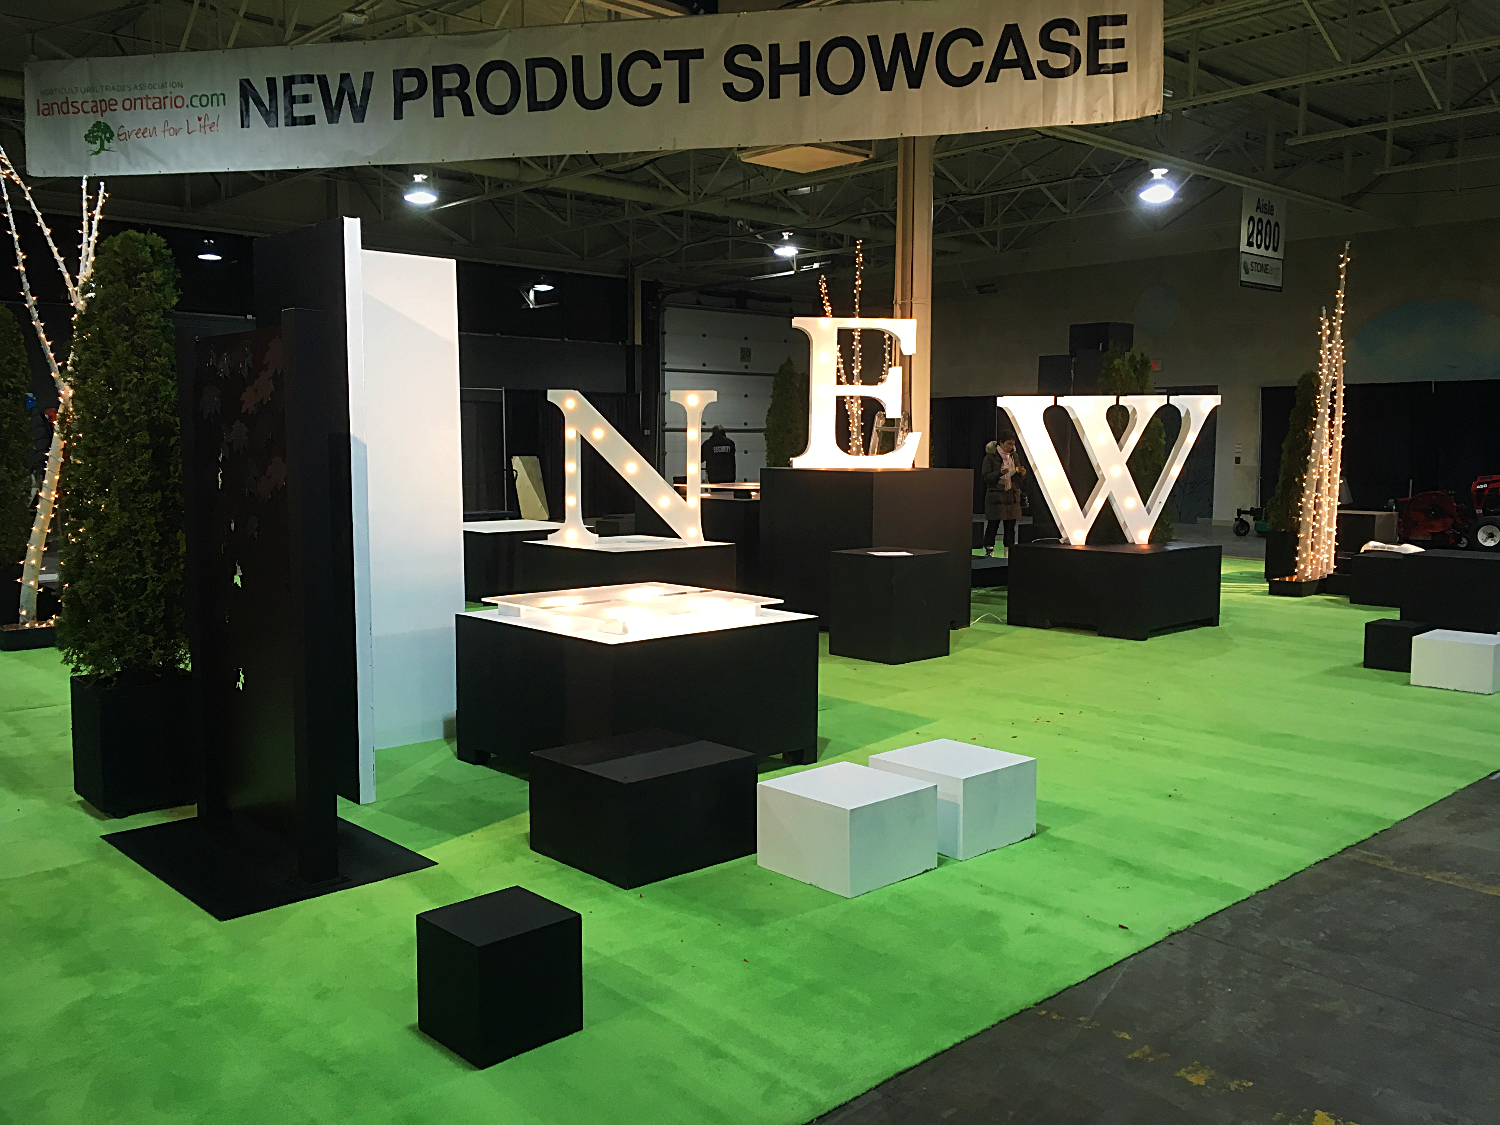 New Product Showcase Display